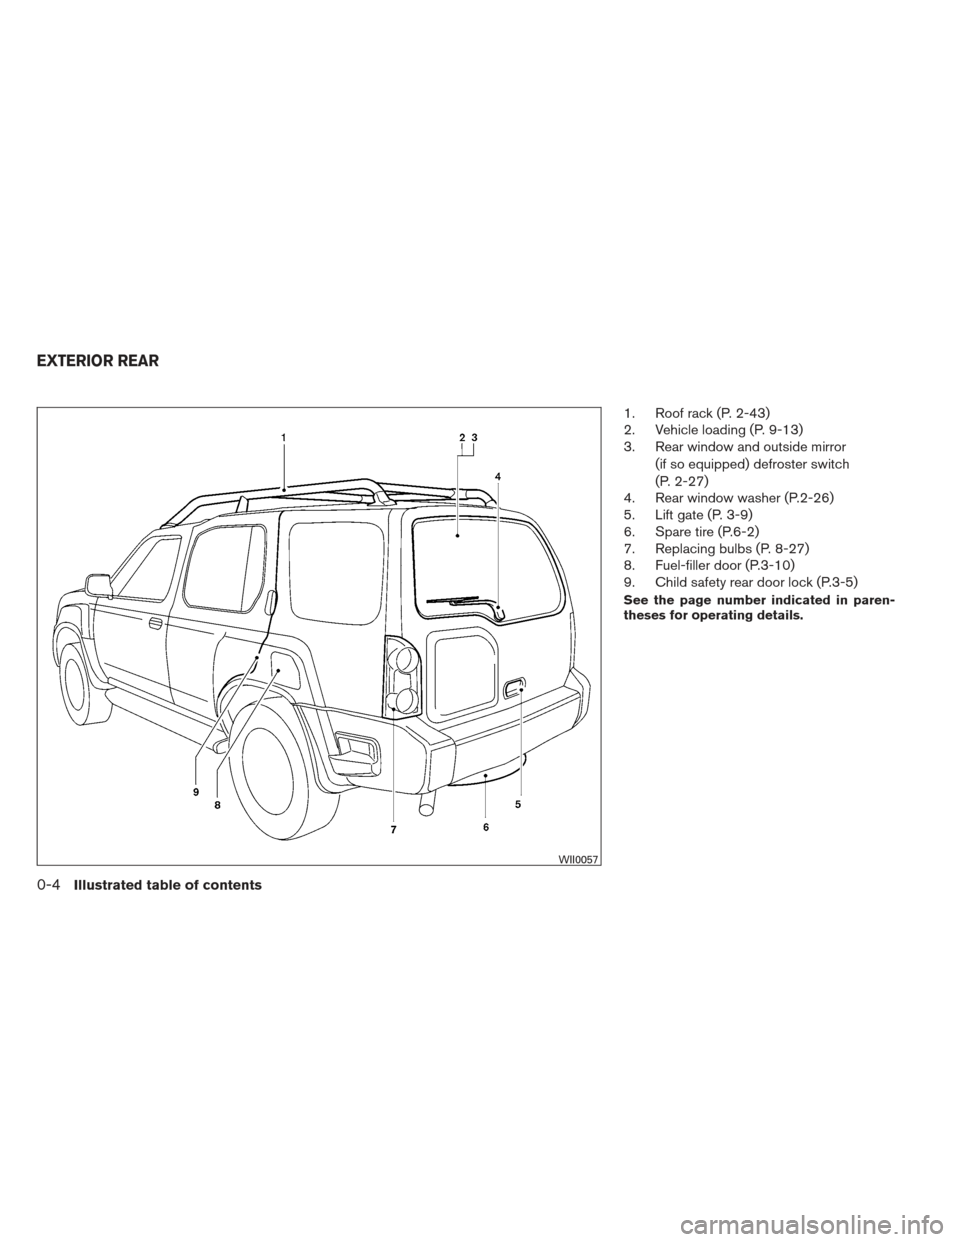 NISSAN XTERRA 2012 N50 / 2.G User Guide 1. Roof rack (P. 2-43) 2. Vehicle loading (P. 9-13) 3. Rear window and outside mirror(if so equipped) defroster switch (P. 2-27) 4. Rear window washer (P.2-26) 5. Lift gate (P. 3-9) 6. Spare tire (P.6